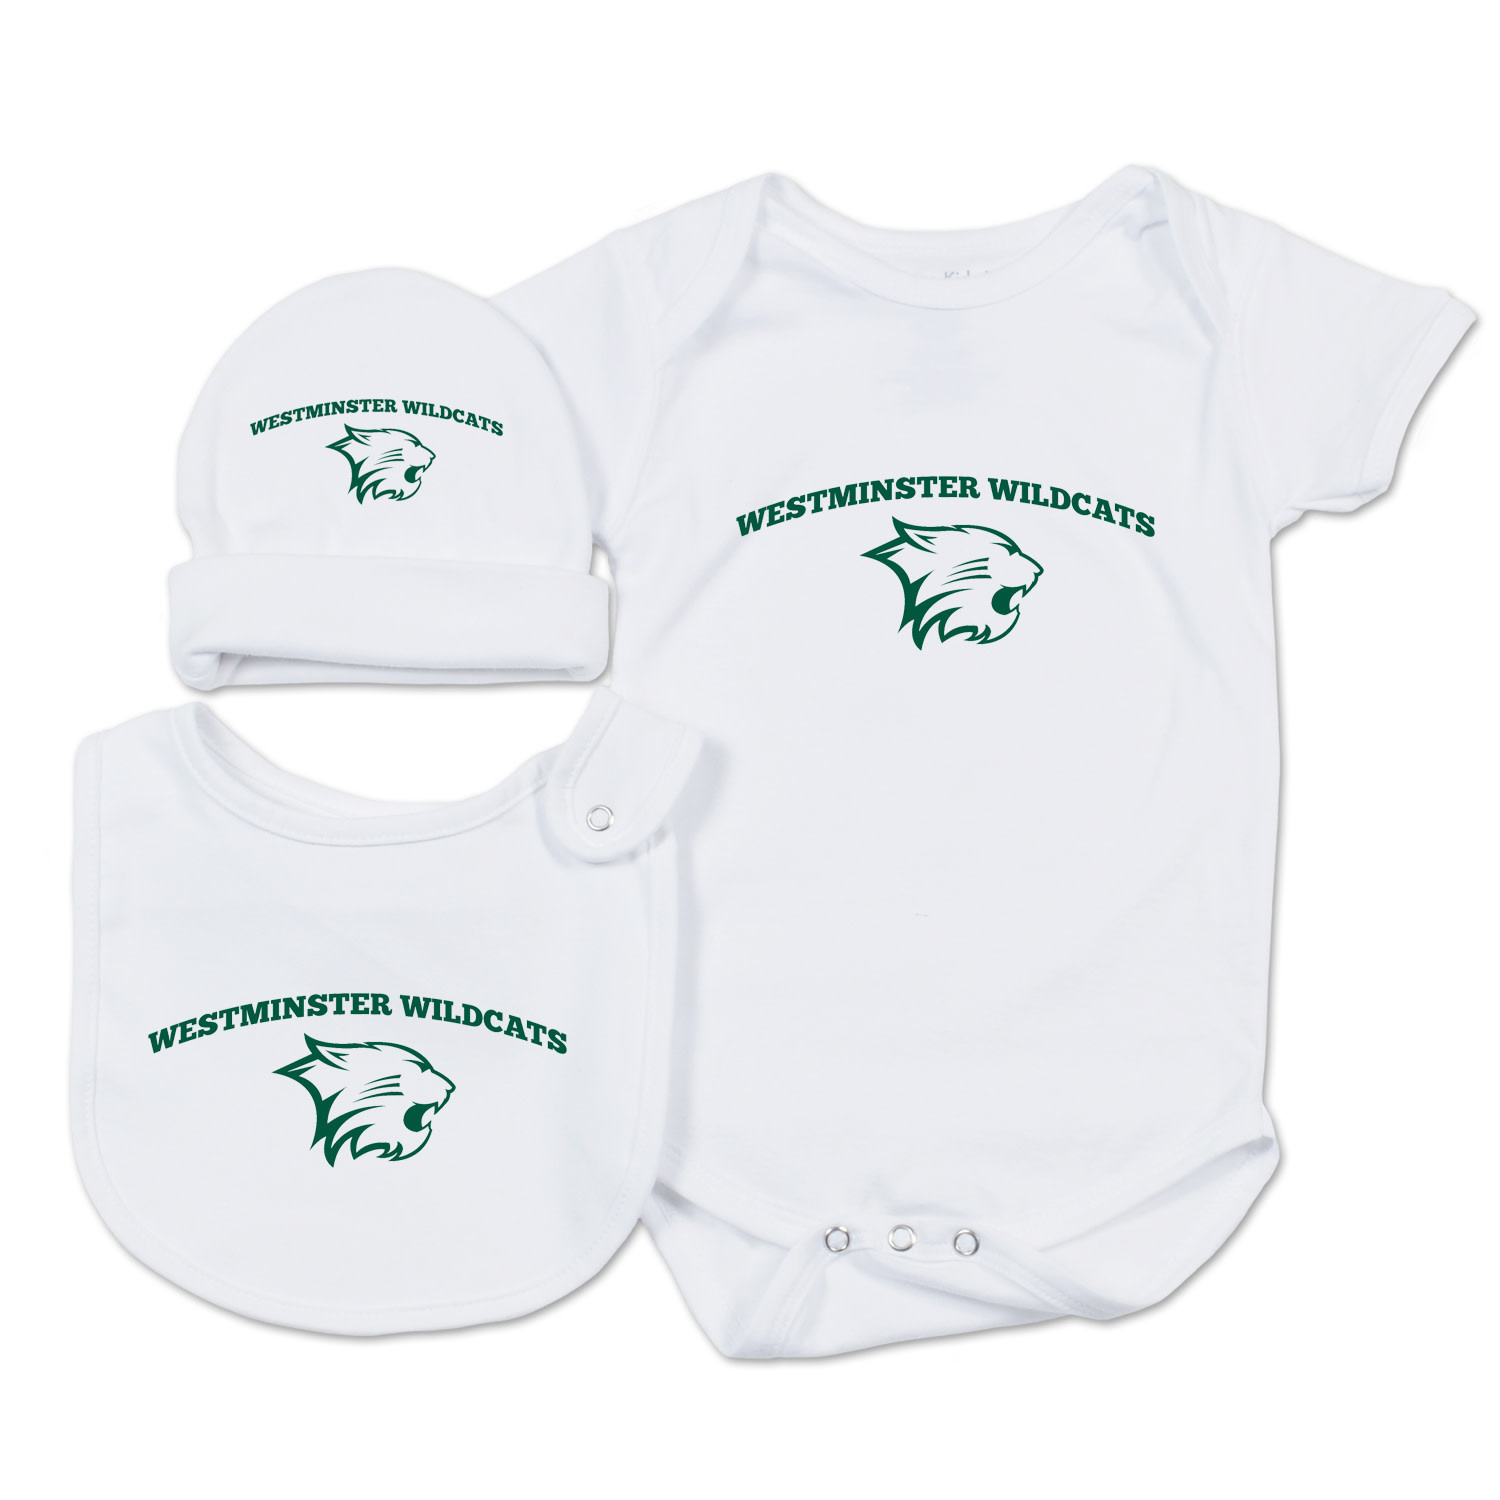 College Kids Baby Essentials Set